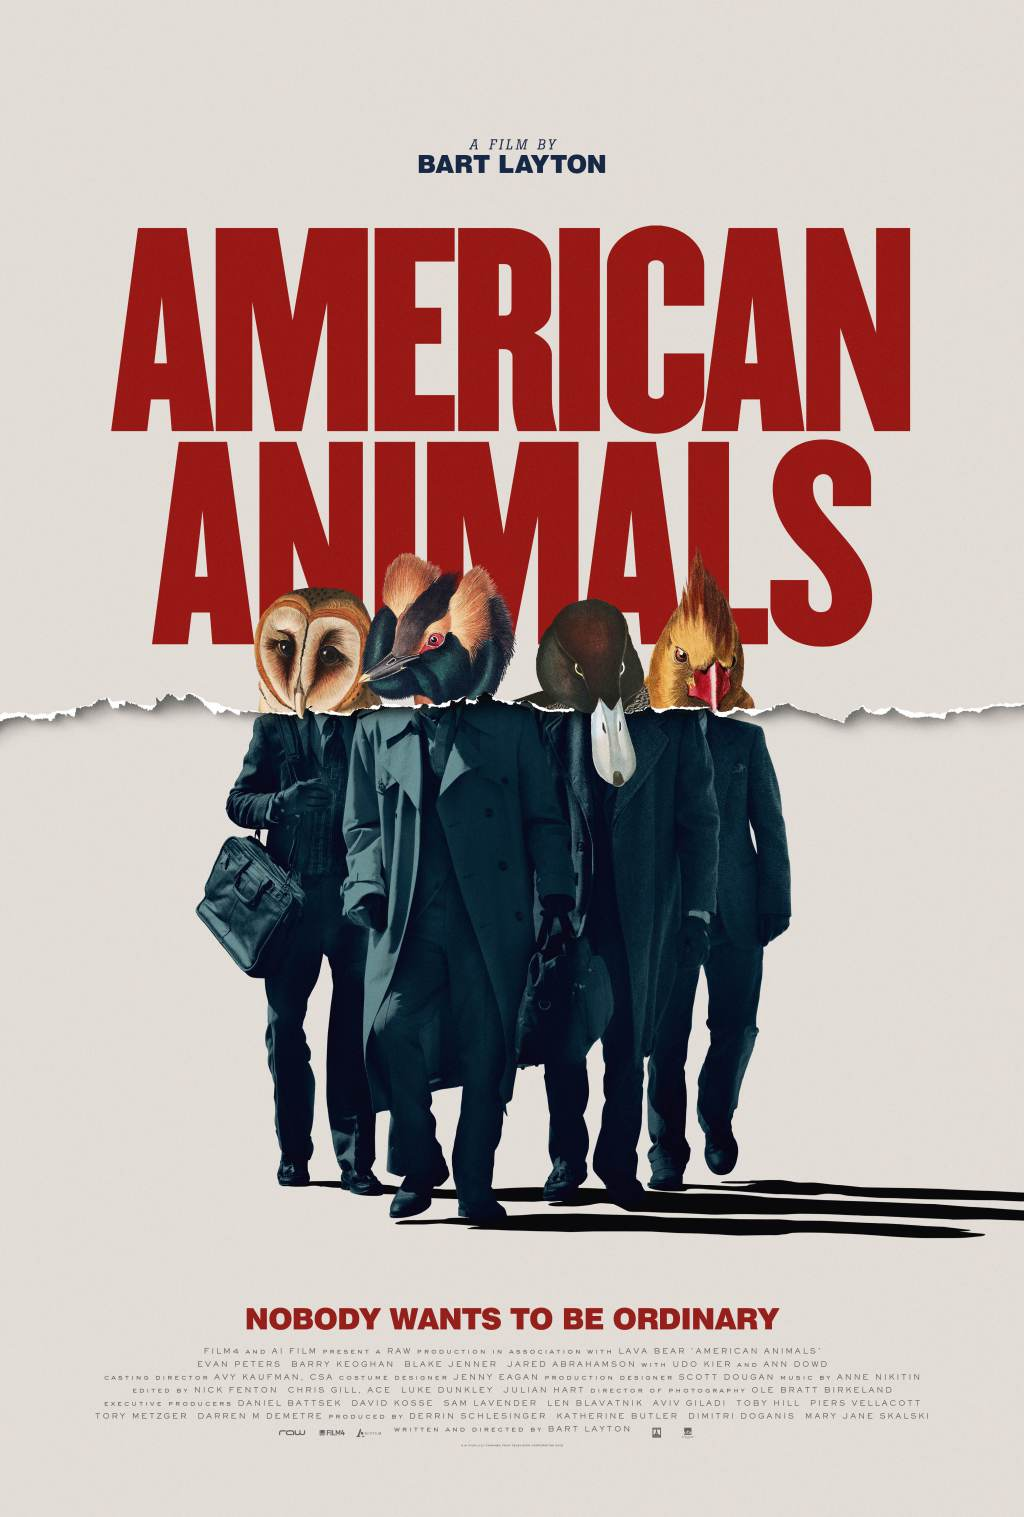 1_aw_33484-american-animals